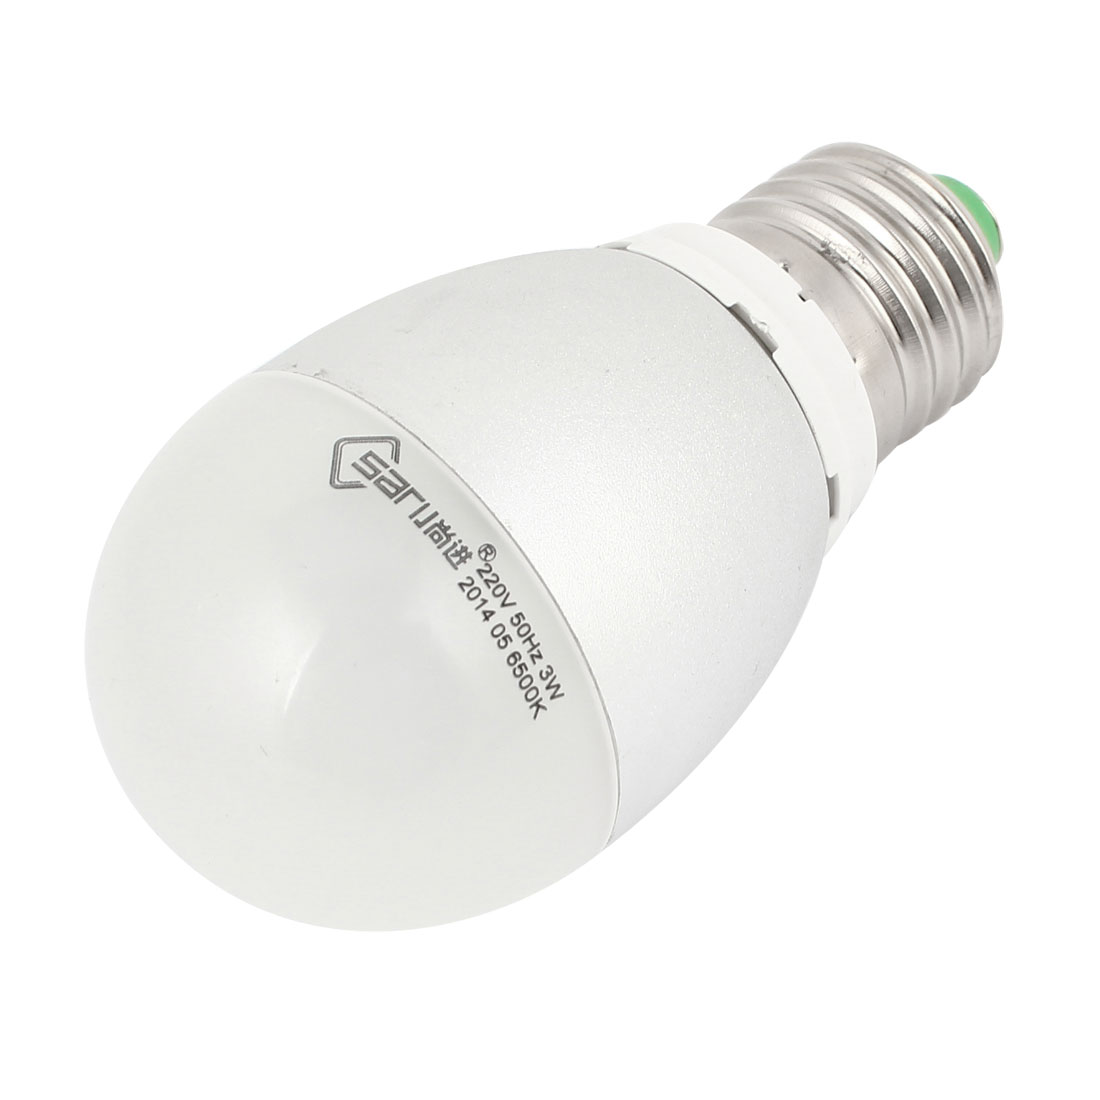 Home E26 Energy Saving LED Globe Ball Pure White Light Lamp Bulb AC 220V 3W